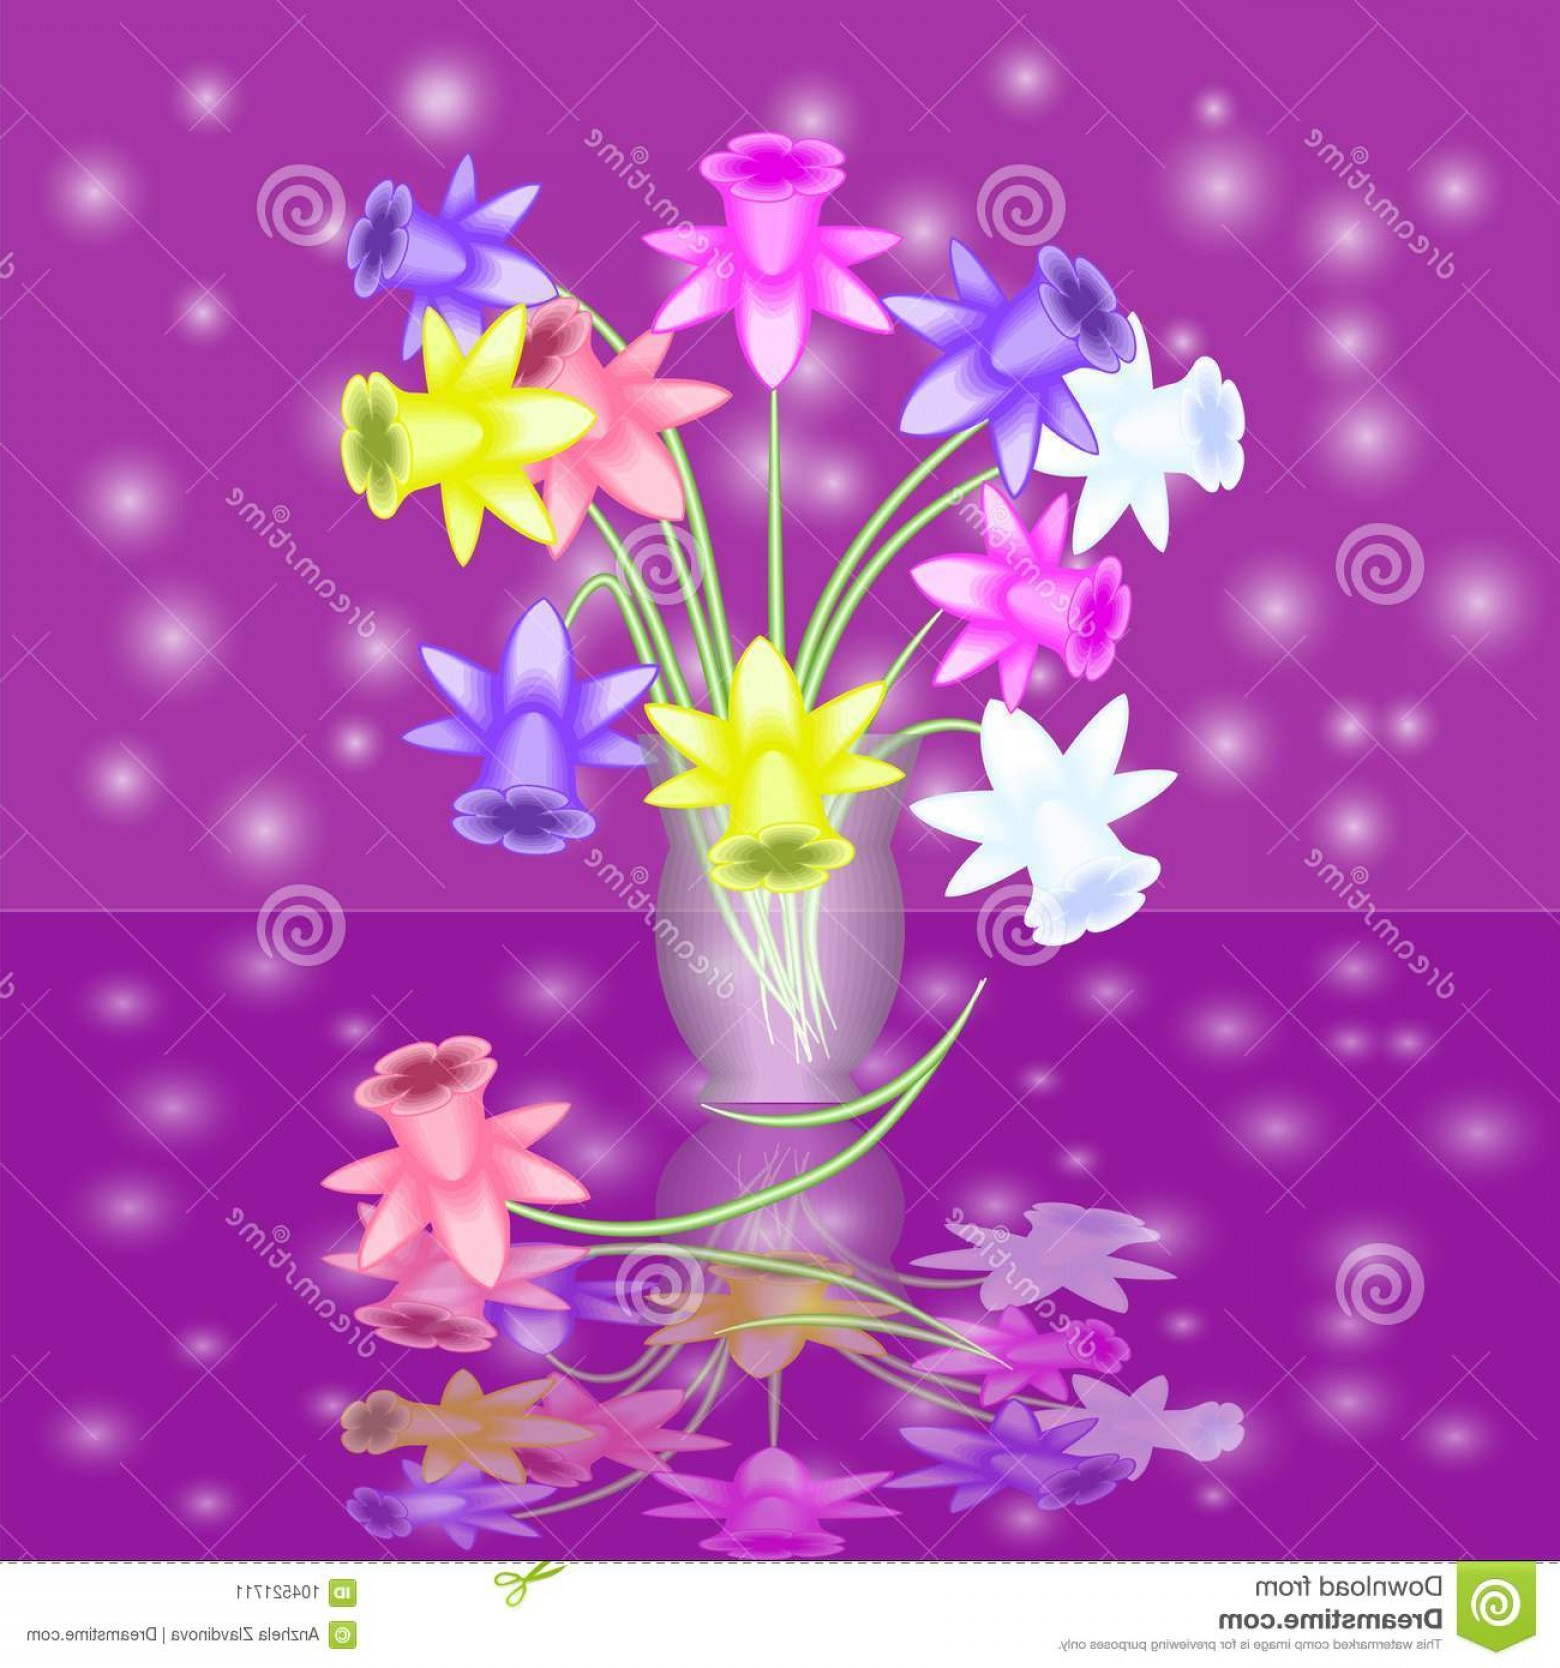 Vase clipart abstract flower, Vase abstract flower.